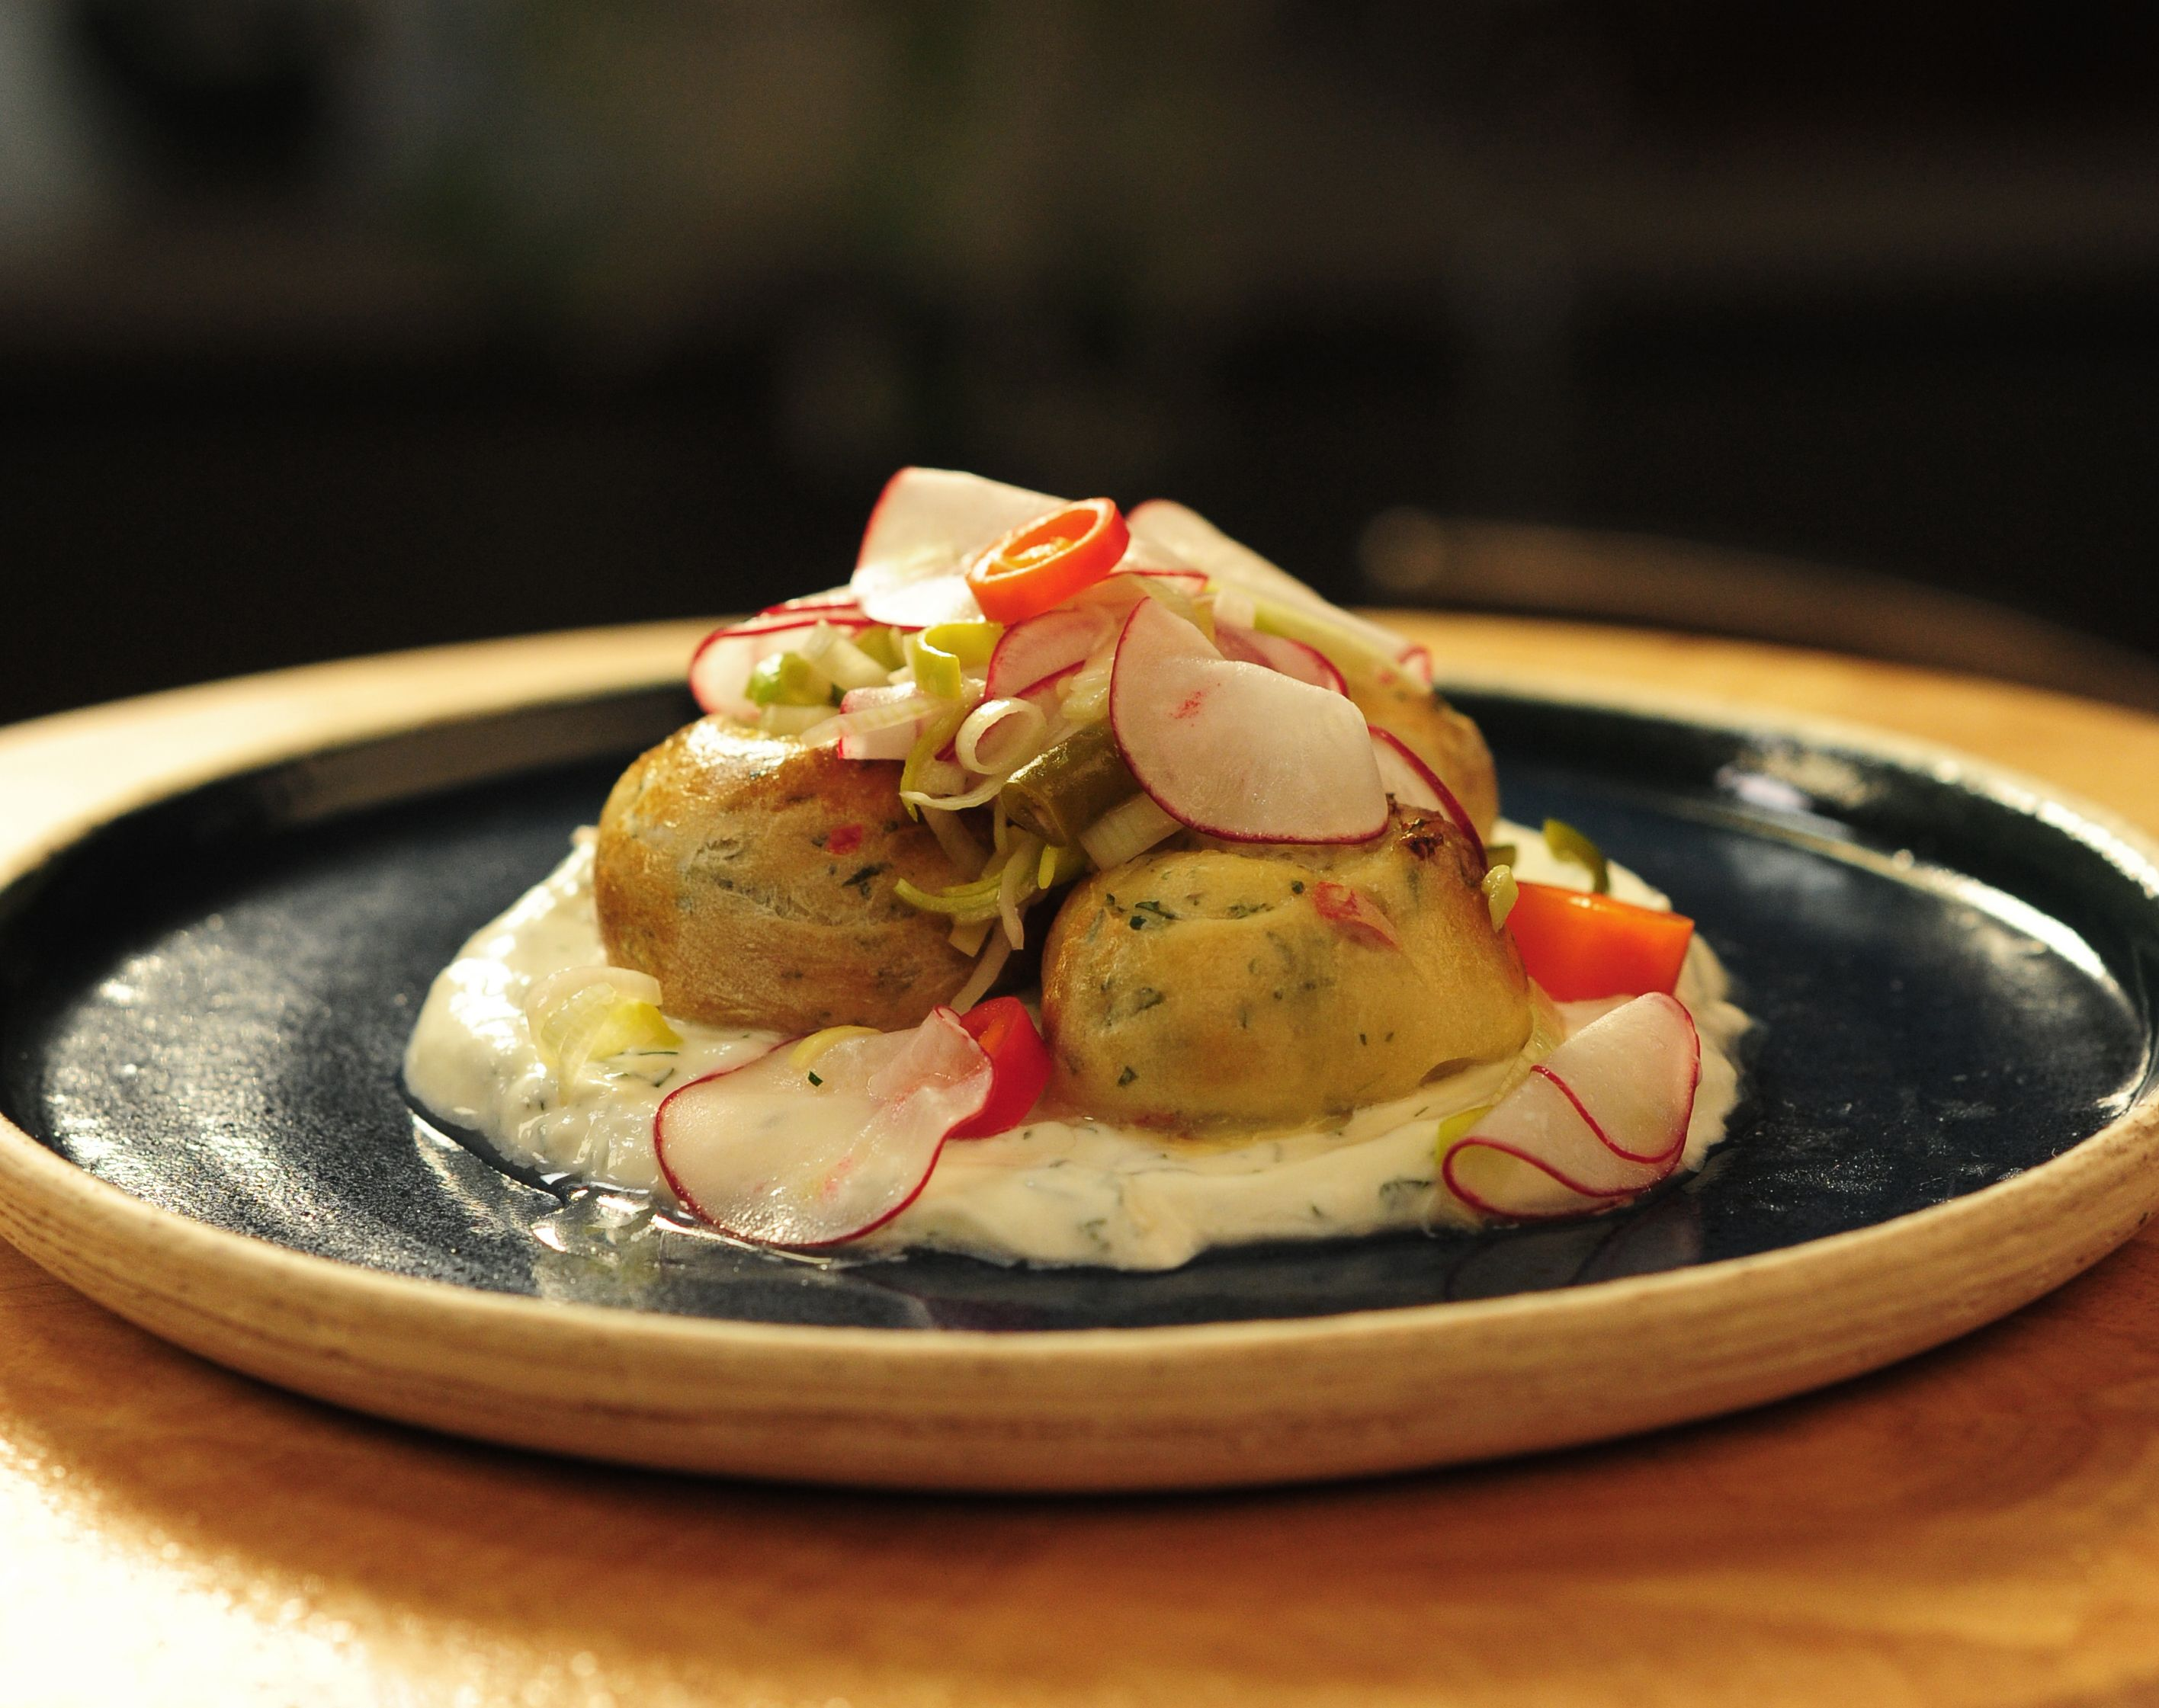 Pin by suman jolly on yum bakes pinterest chicken dumplings baked chicken dumplings with pickled chilli rachel khoos mini sausage rolls with a yoghurt sauce and salad forumfinder Images